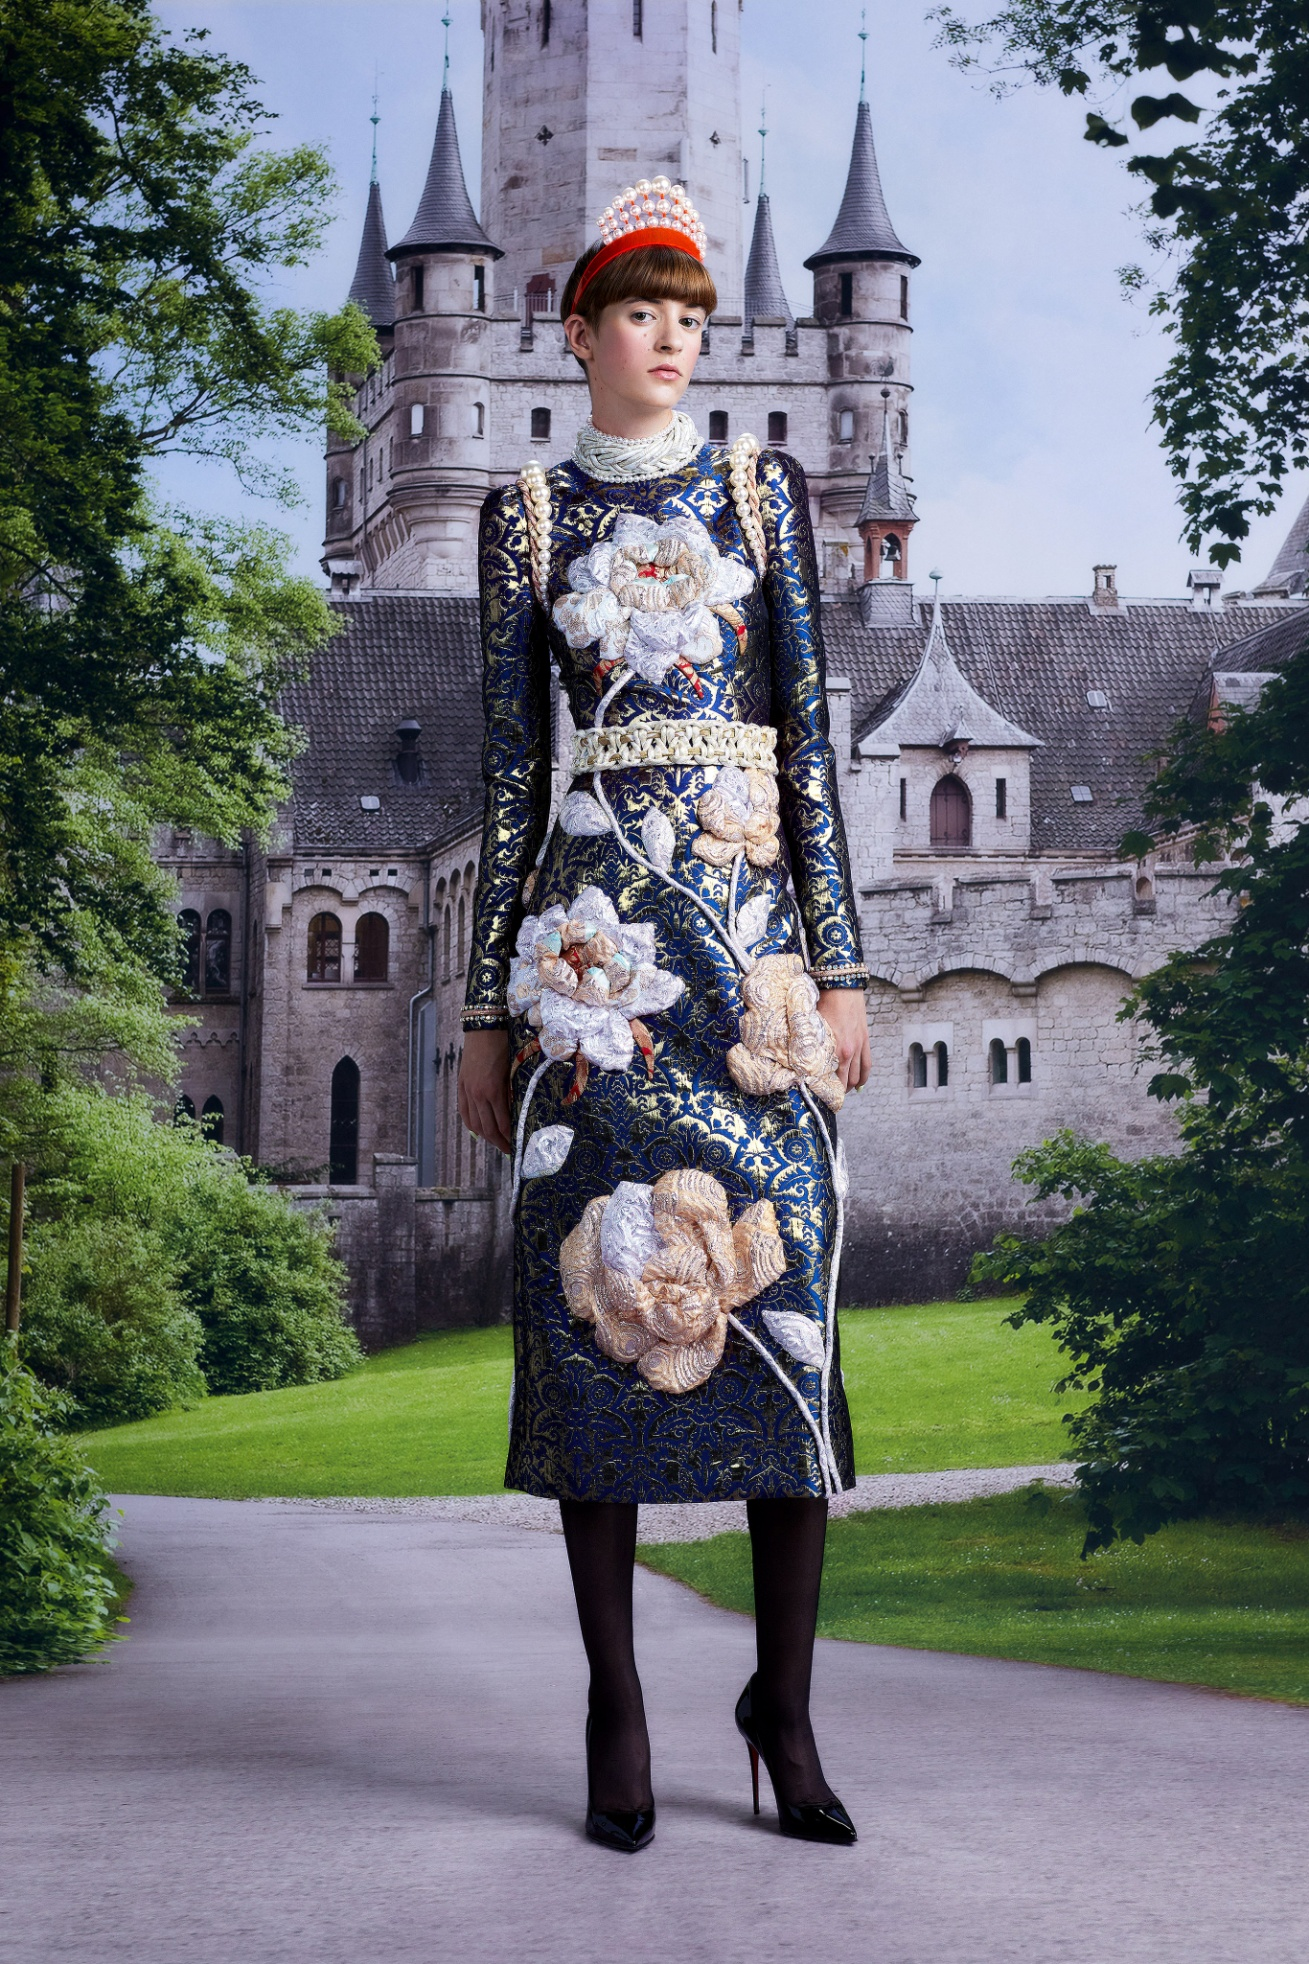 Viktor Rolf Couture Fall- 1 embroidered queen w castle vogue 21.jpg